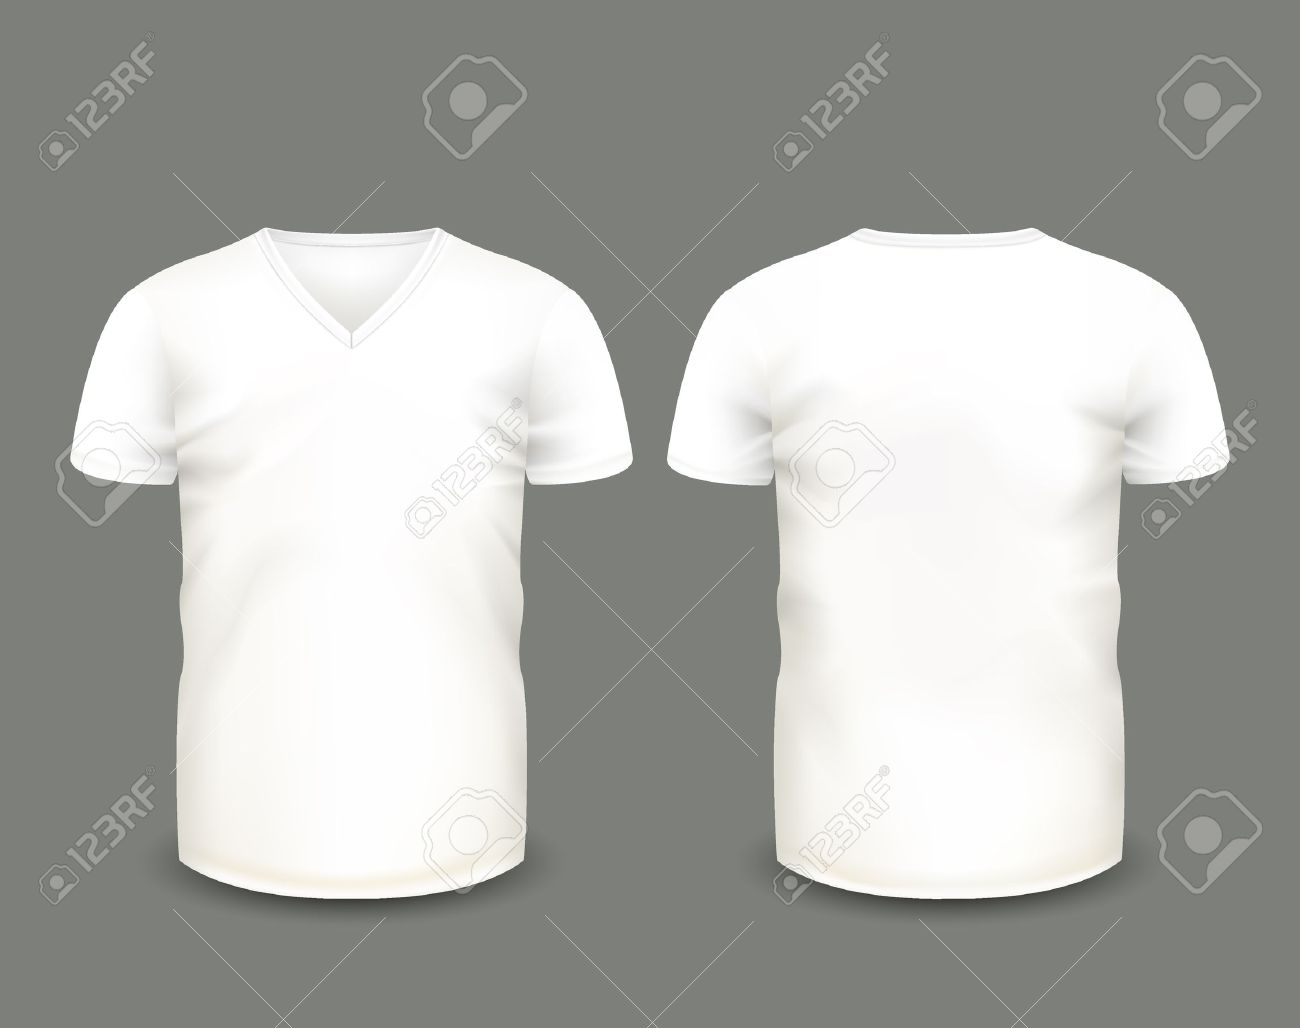 2011fd6f0 Men's White V-neck T-shirt Short Sleeve In Front And Back Views ...